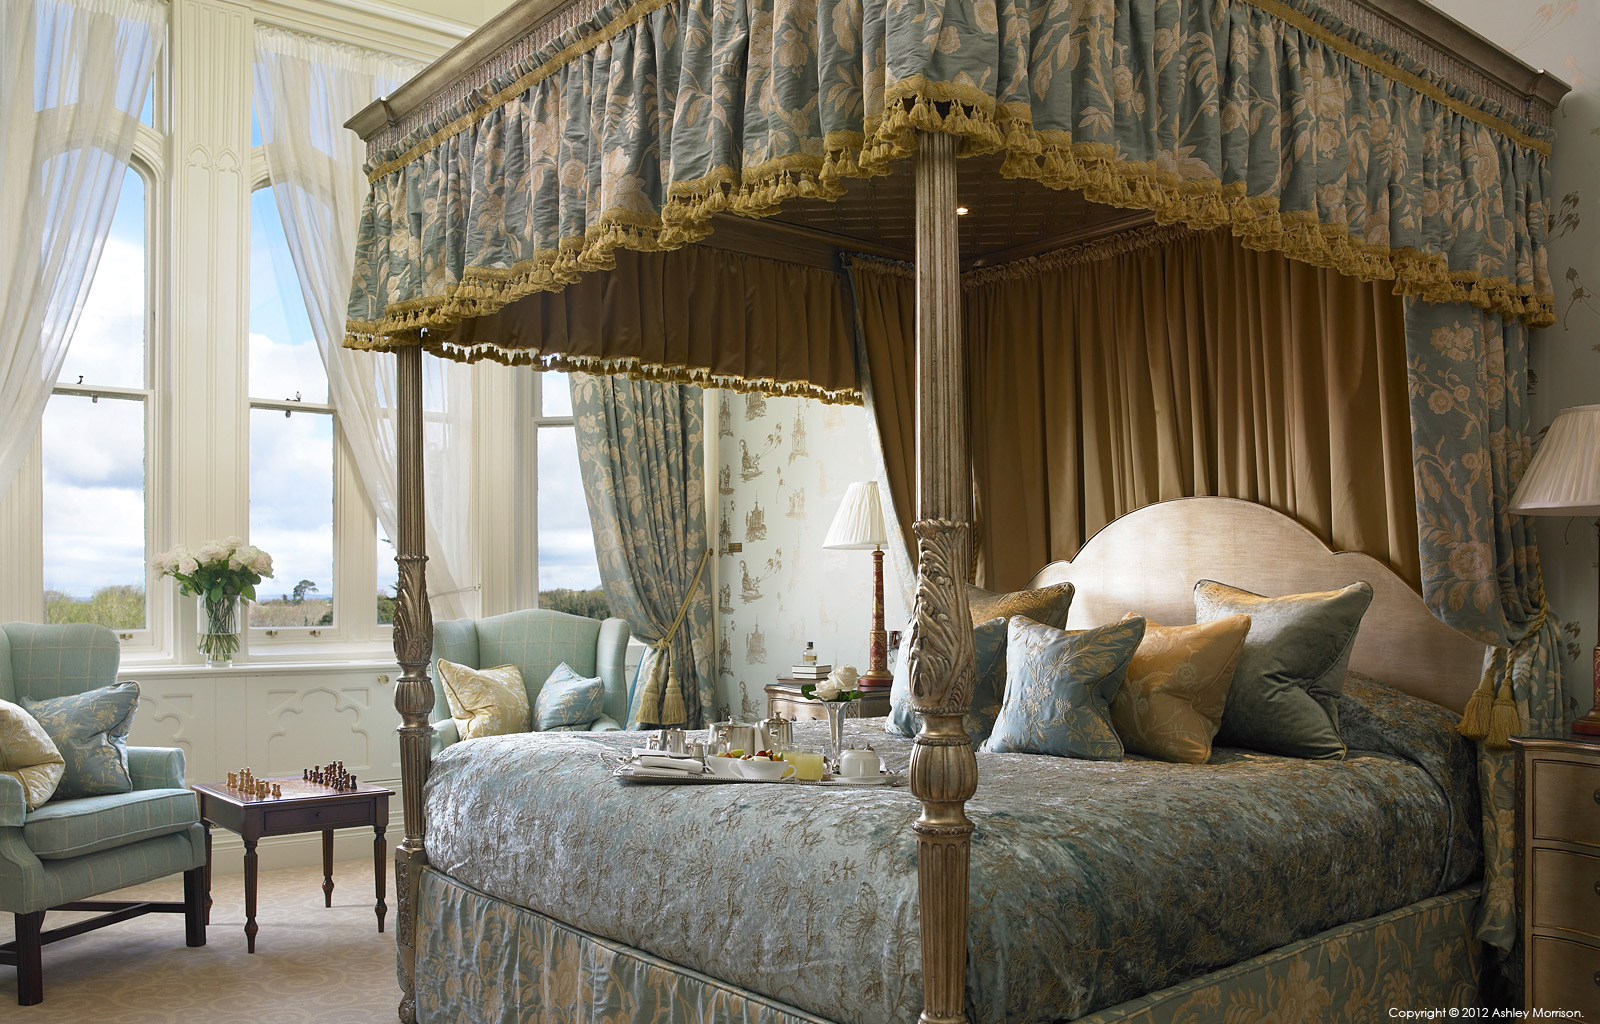 The four poster bed in the 'Presidential suite' at Dromoland Castle in County Clare.